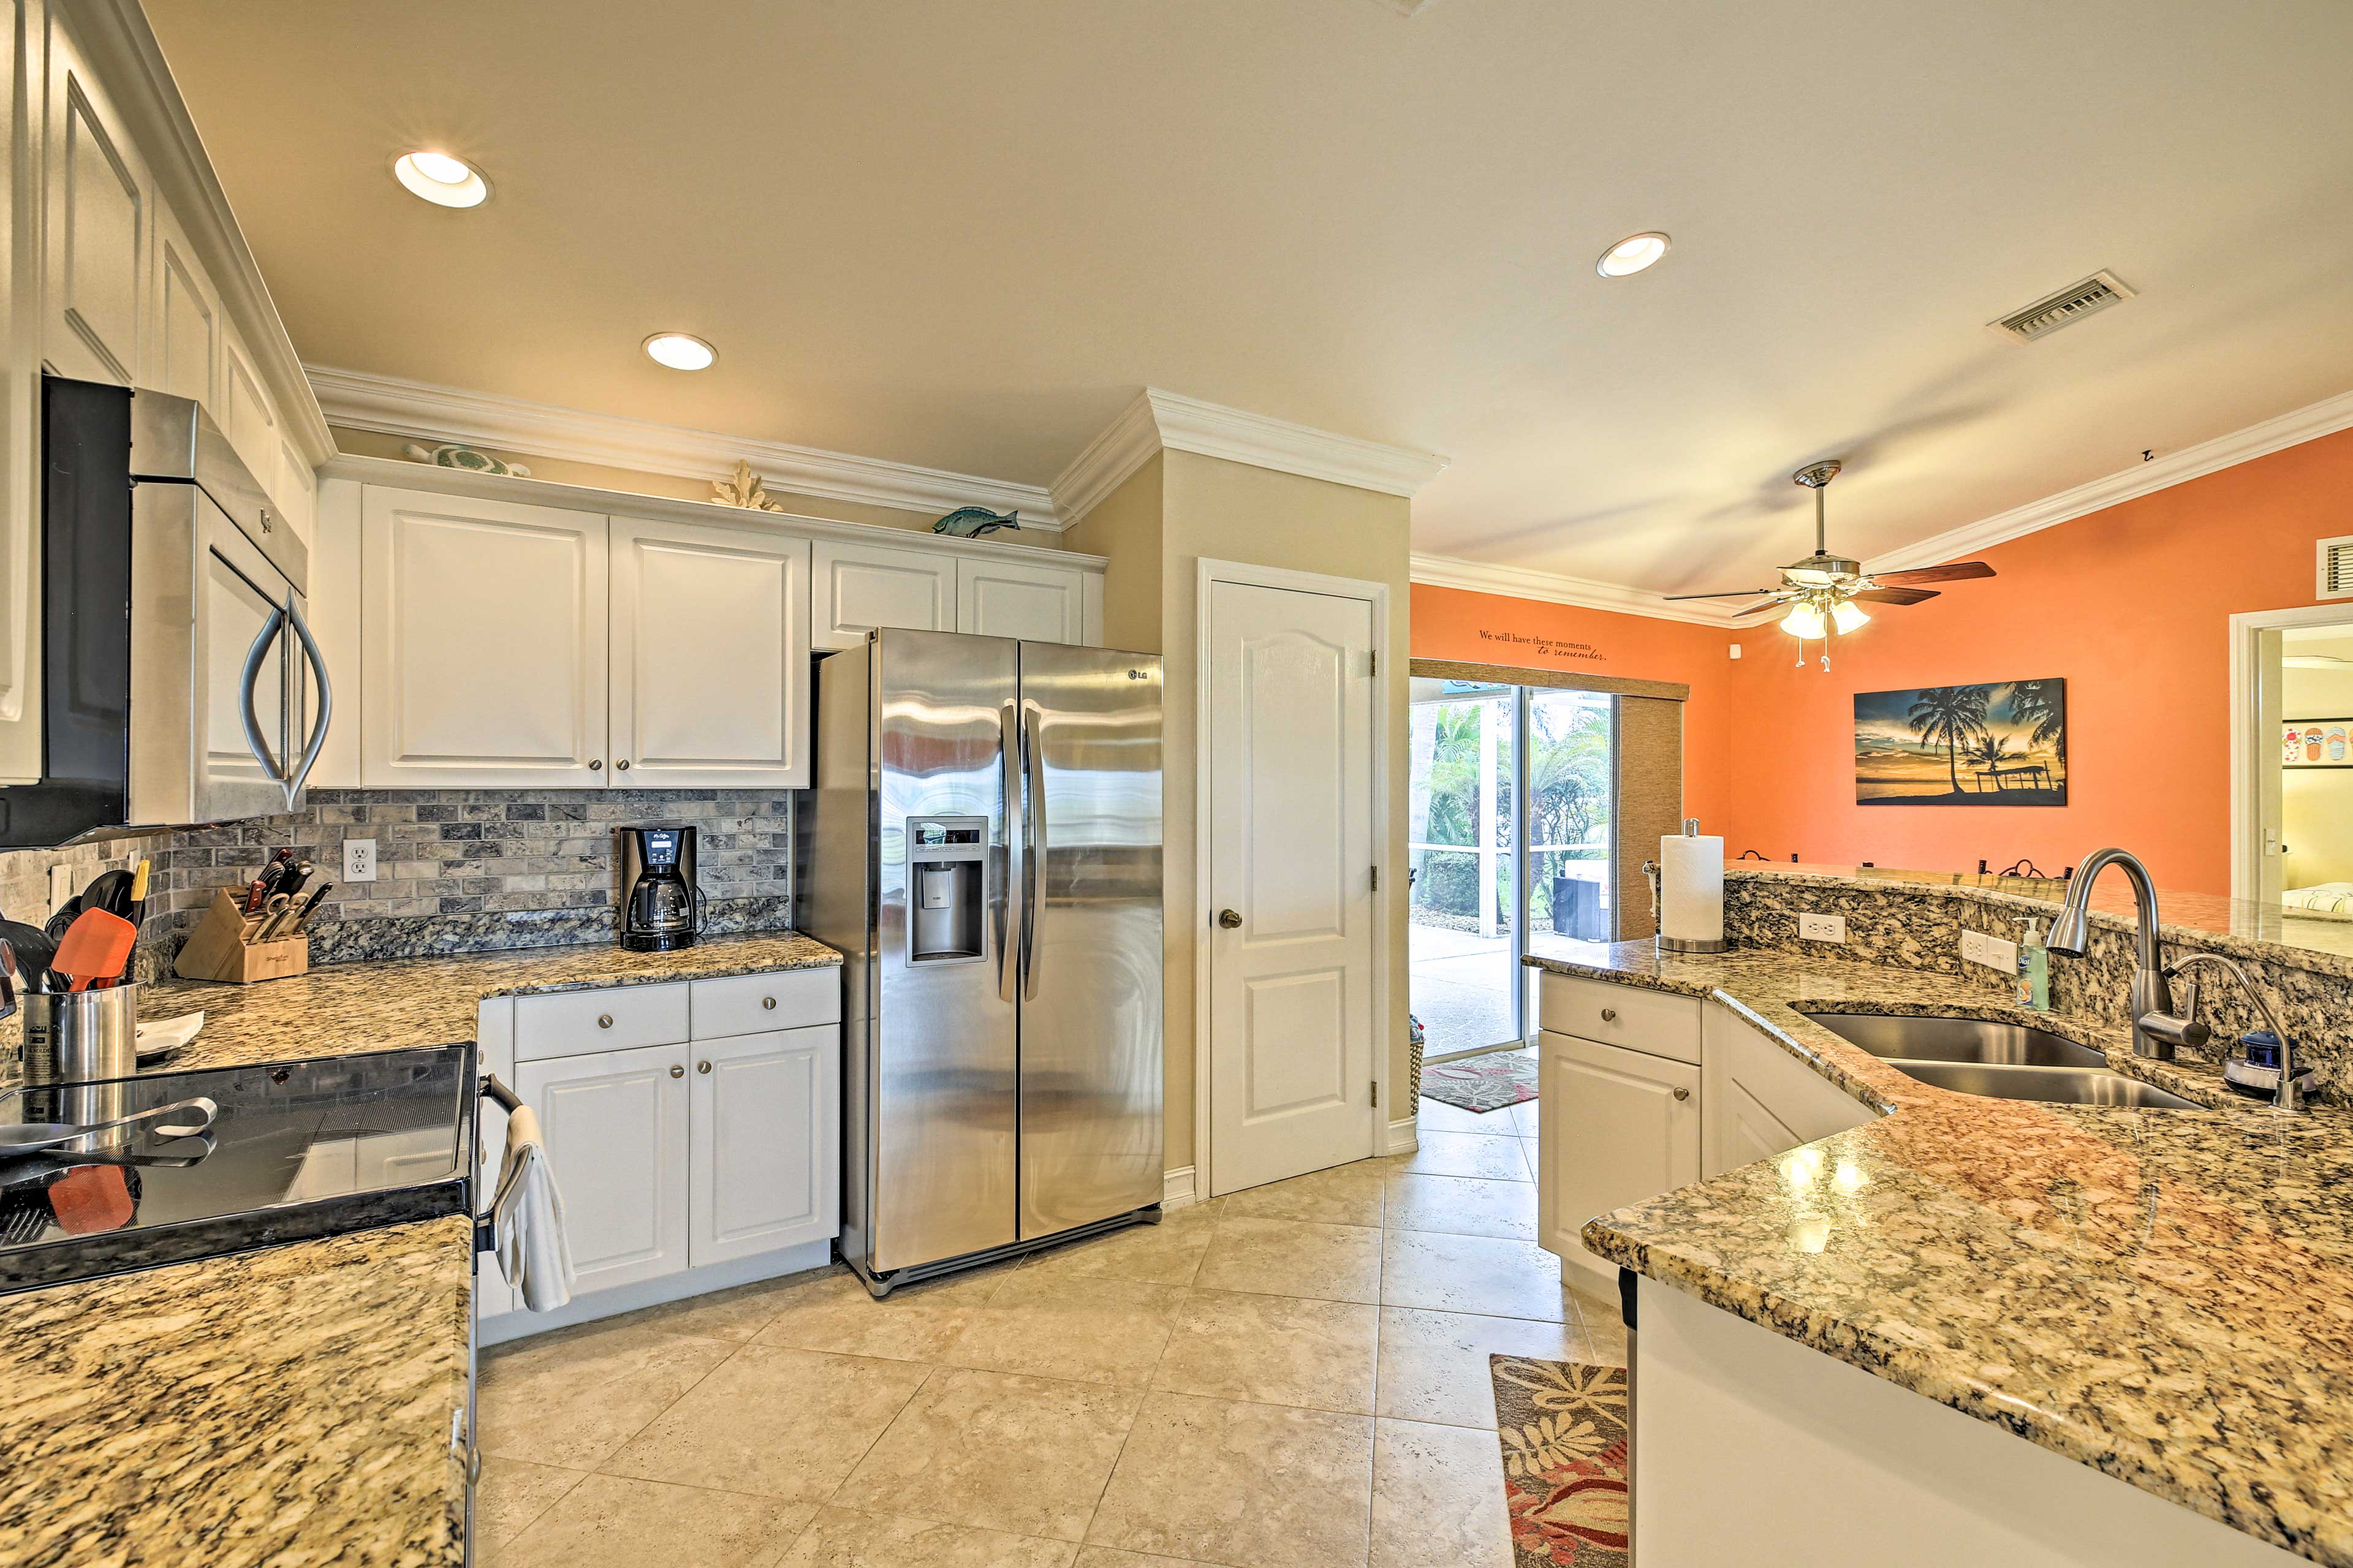 Whip up something everyone will love with the stainless steel appliances.